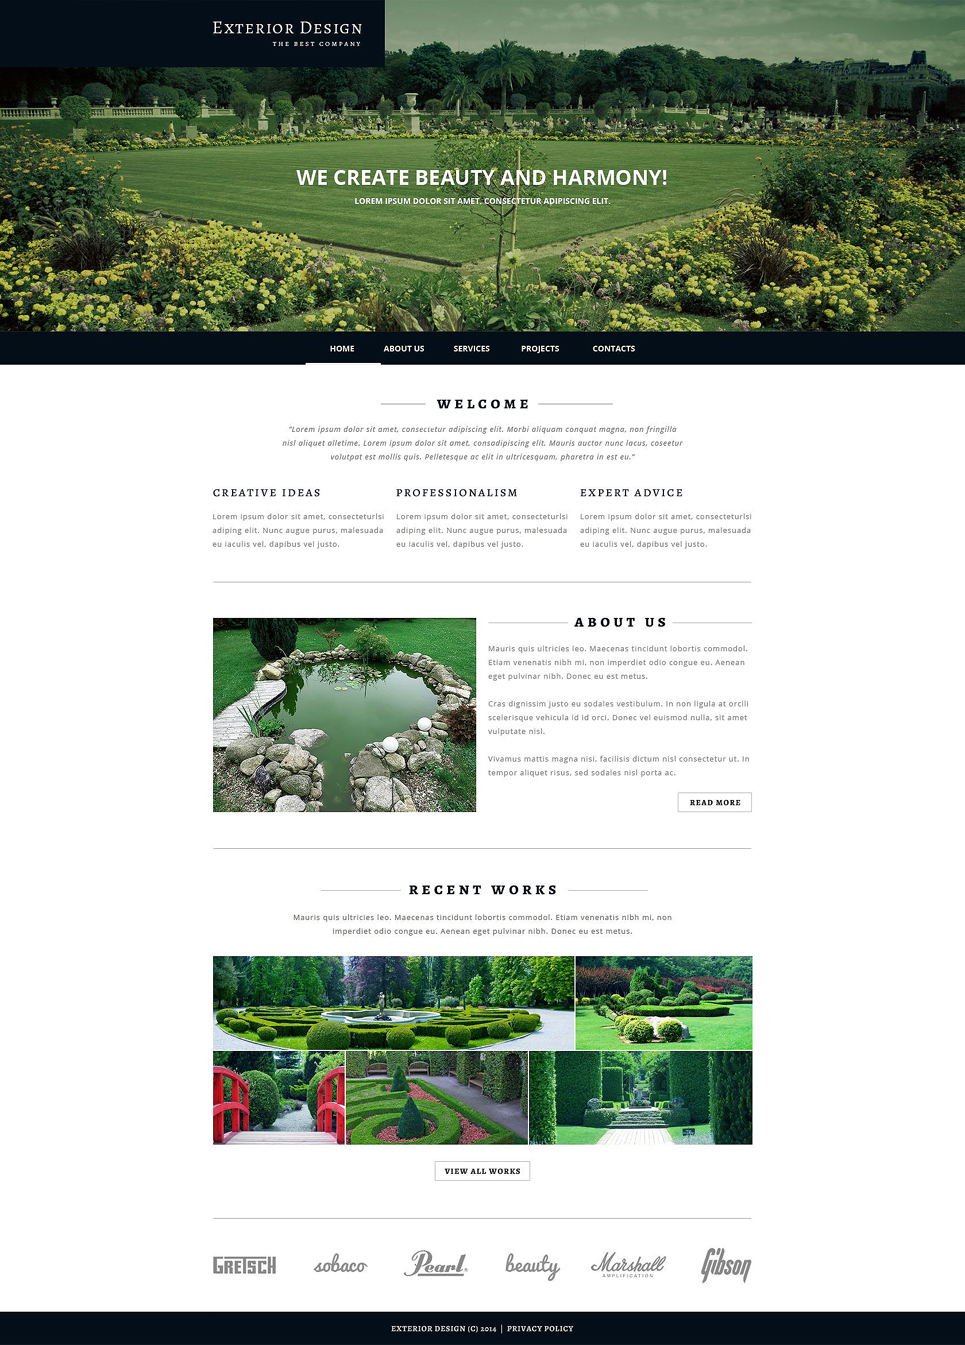 Exterior design responsive website template 51826 for Exterior design website templates